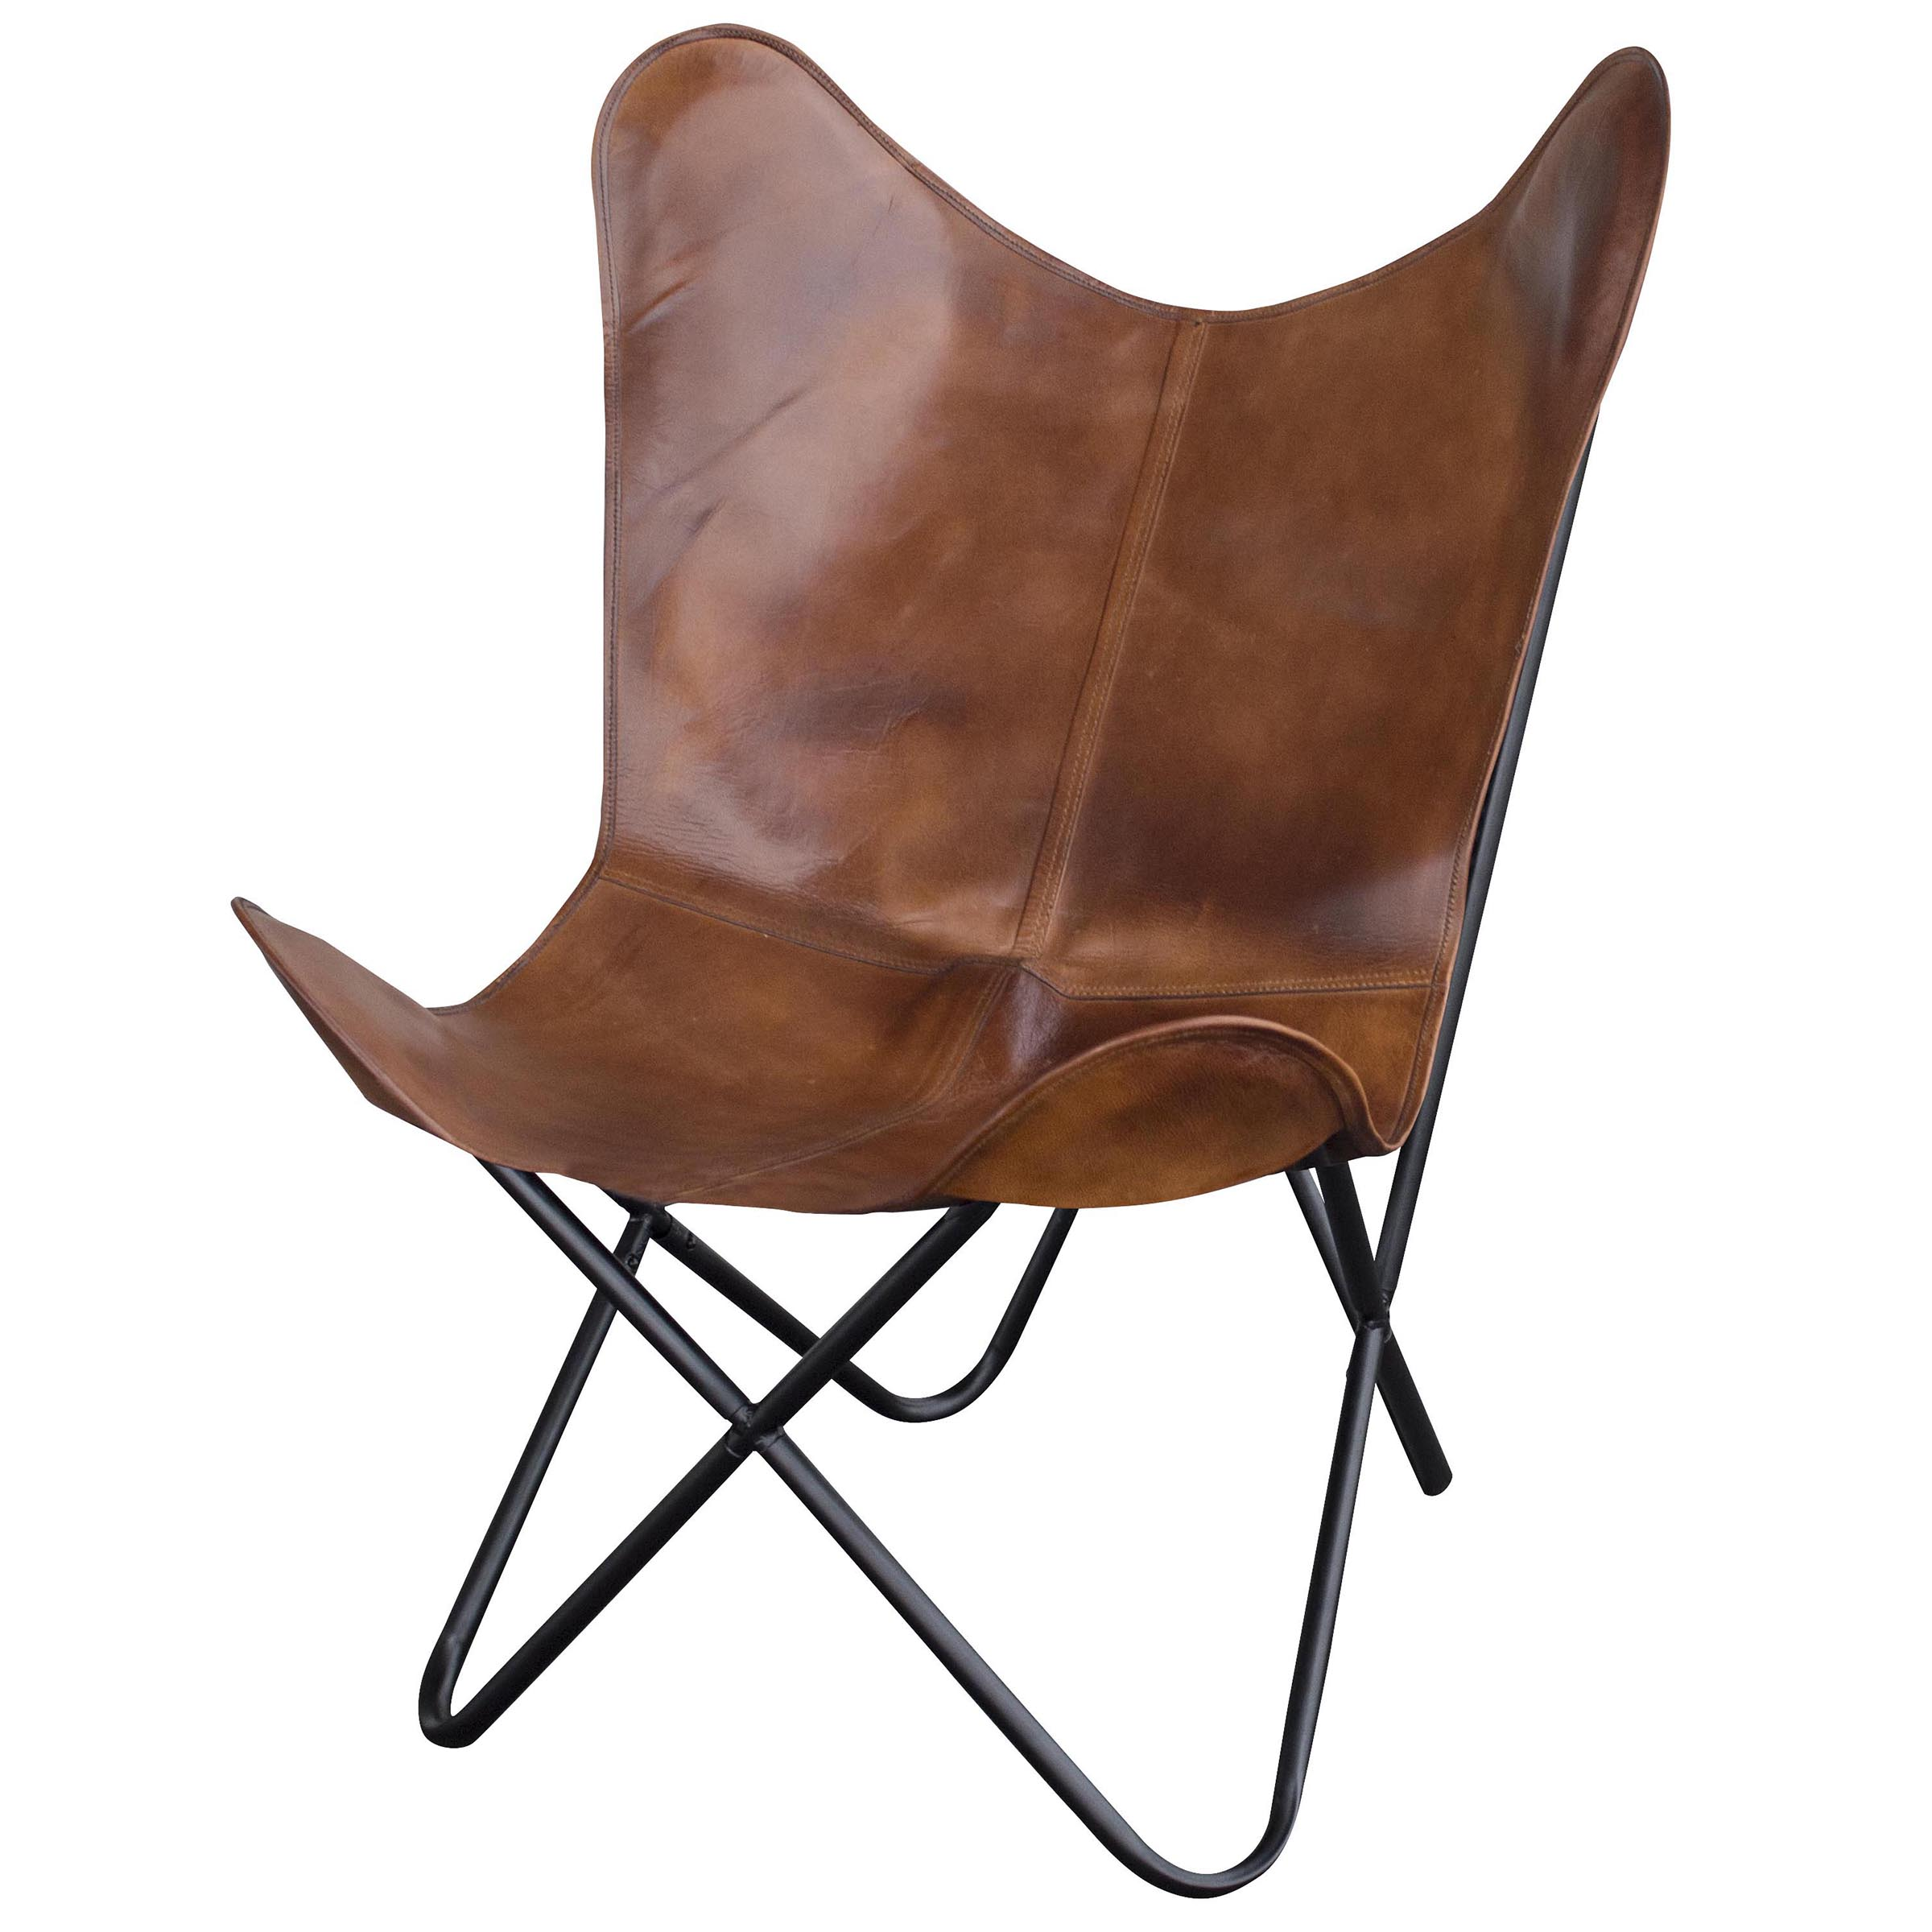 Leather Butterfly Chair in Natural Tan